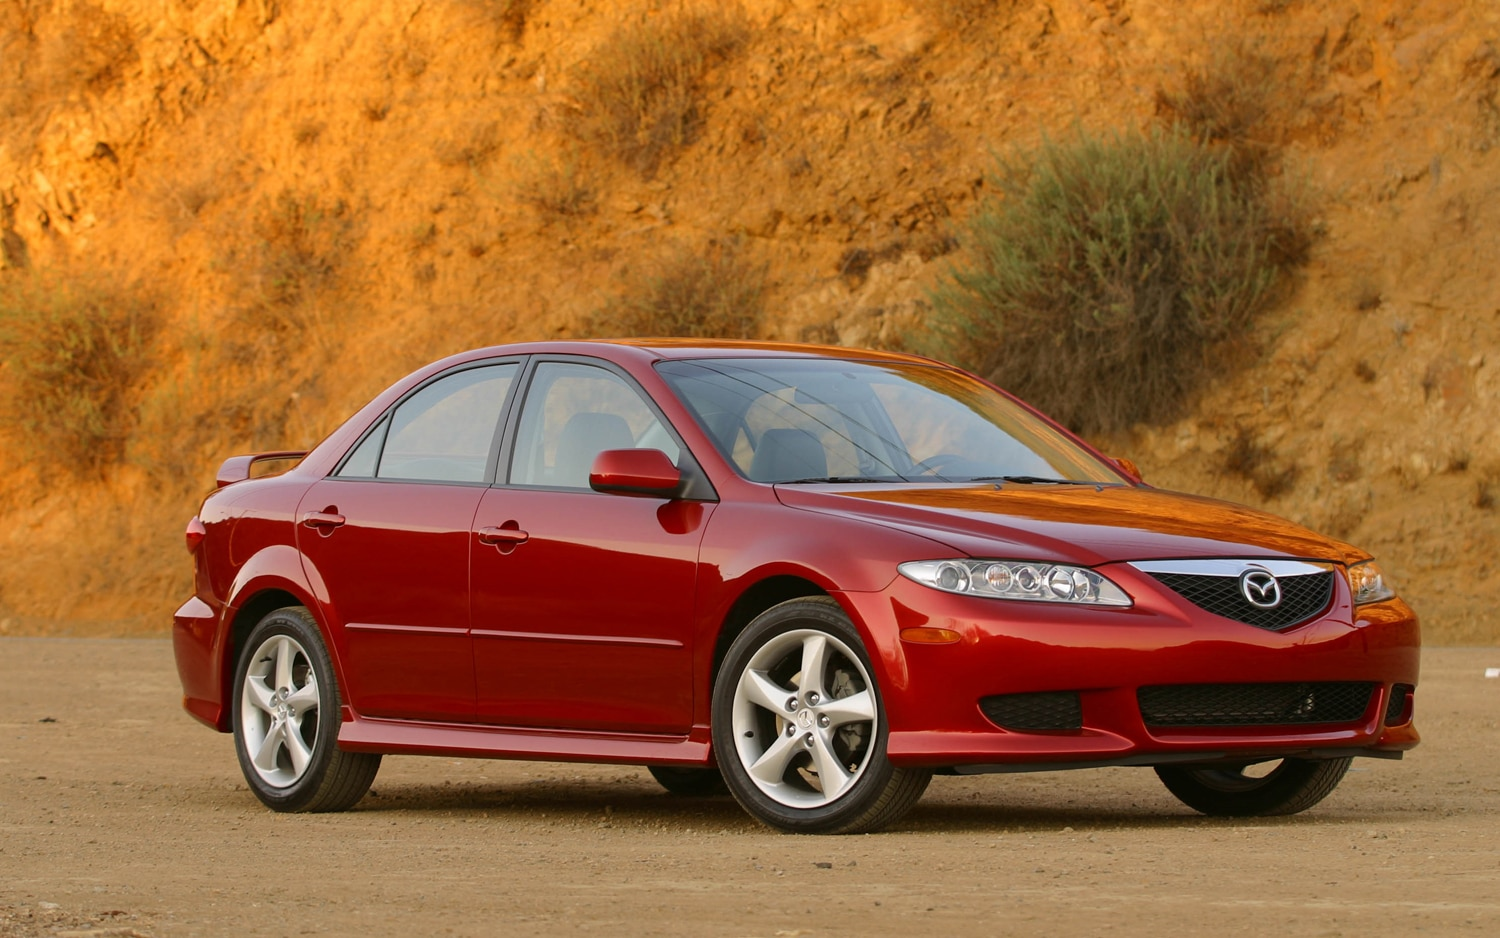 Honda, Nissan, and Mazda Recall Cars for Airbag Defect ...